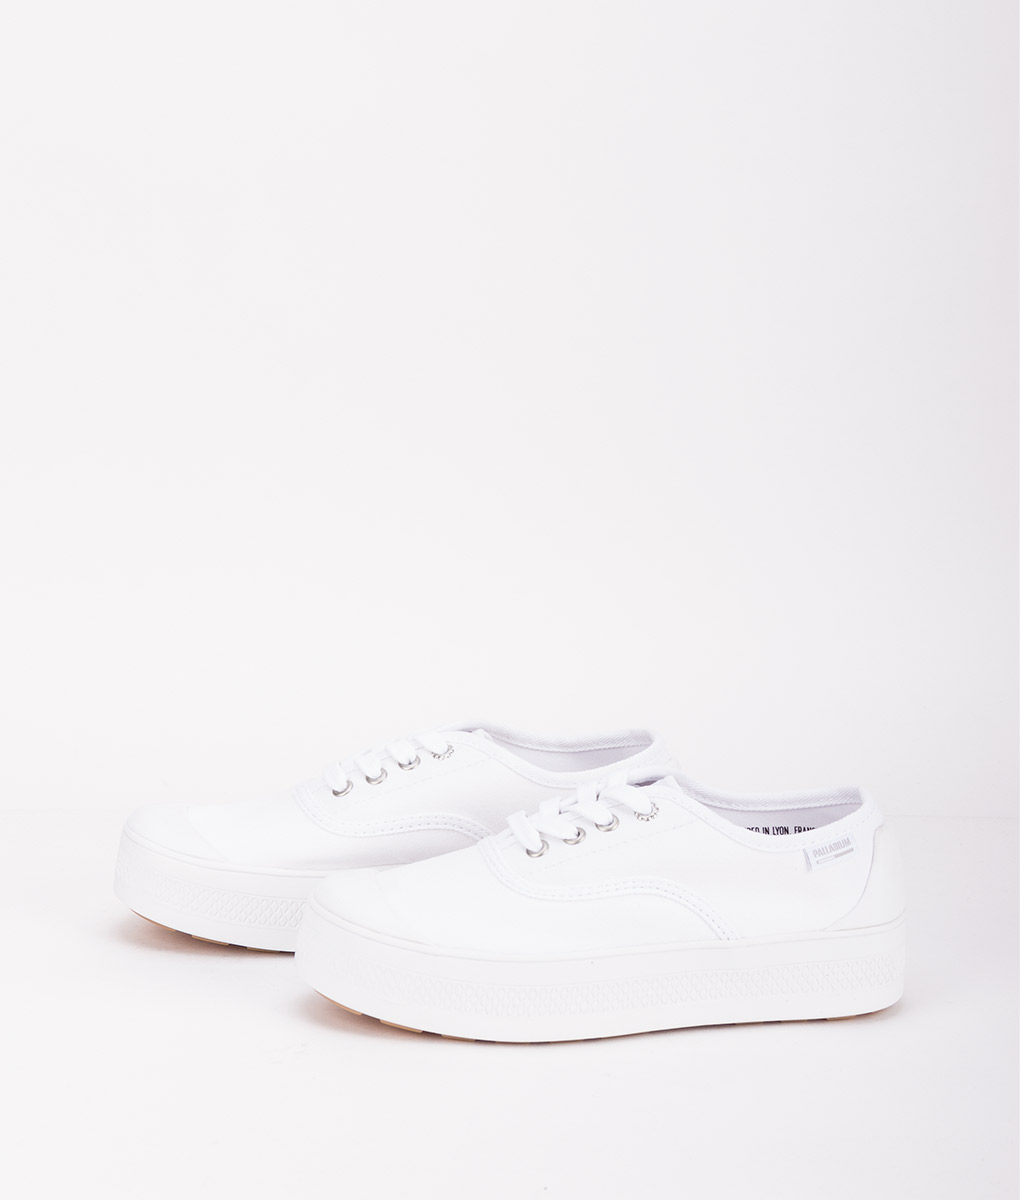 PALLADIUM Women Sneakers 95768 SUB LOW CVS, White 74.99